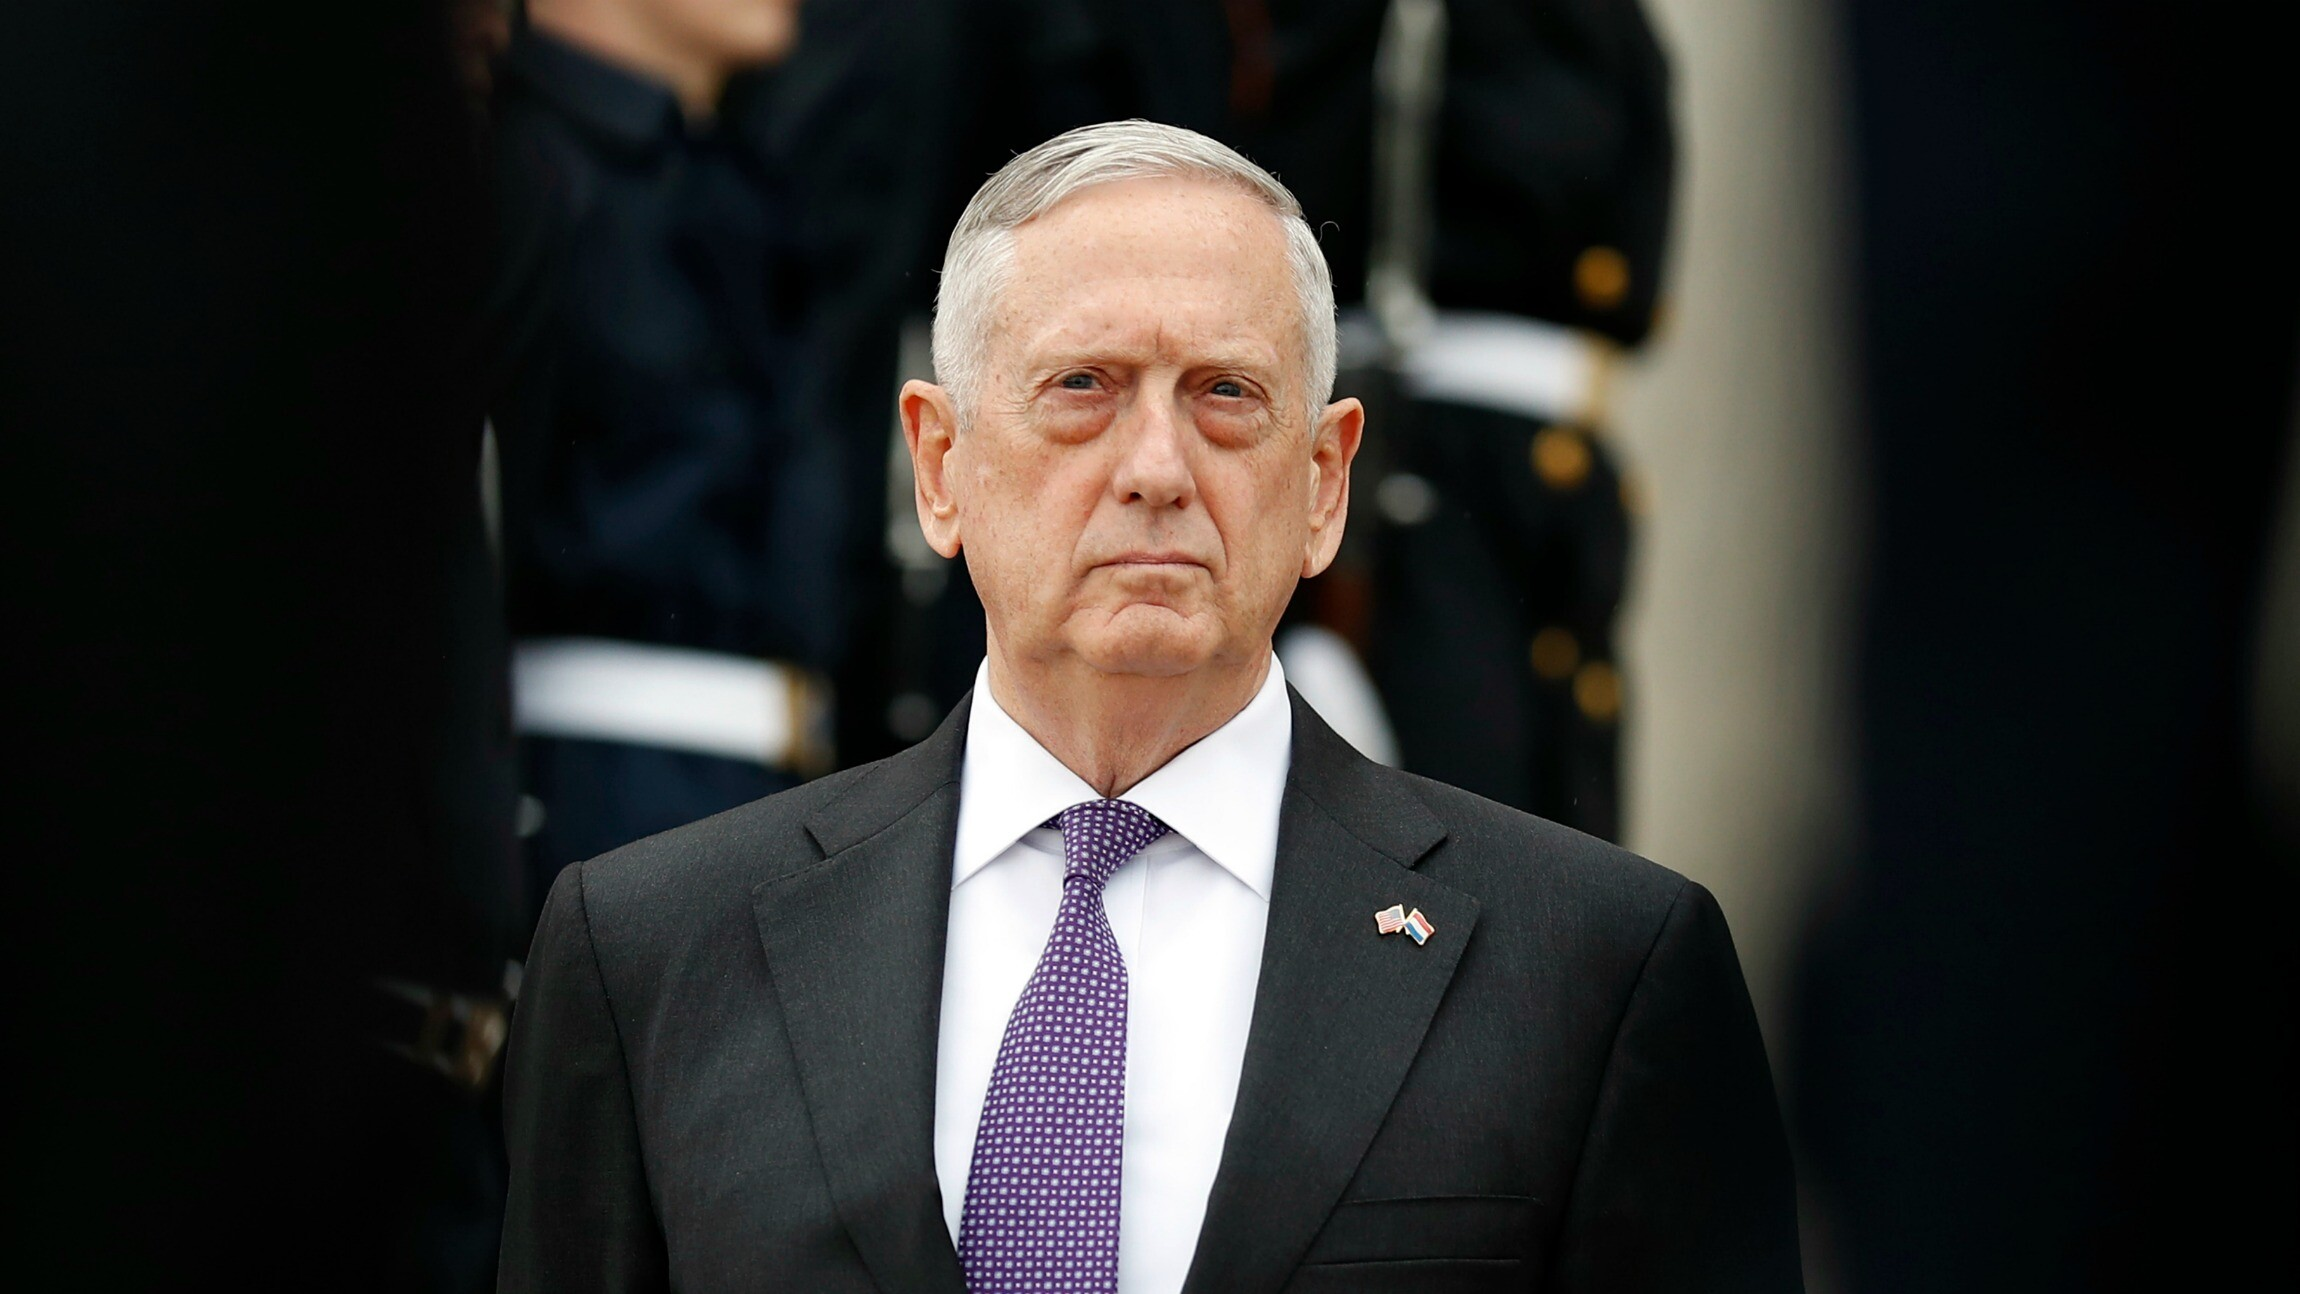 Mattis: Let me tell you about how badly Obama screwed up the ISIS situation